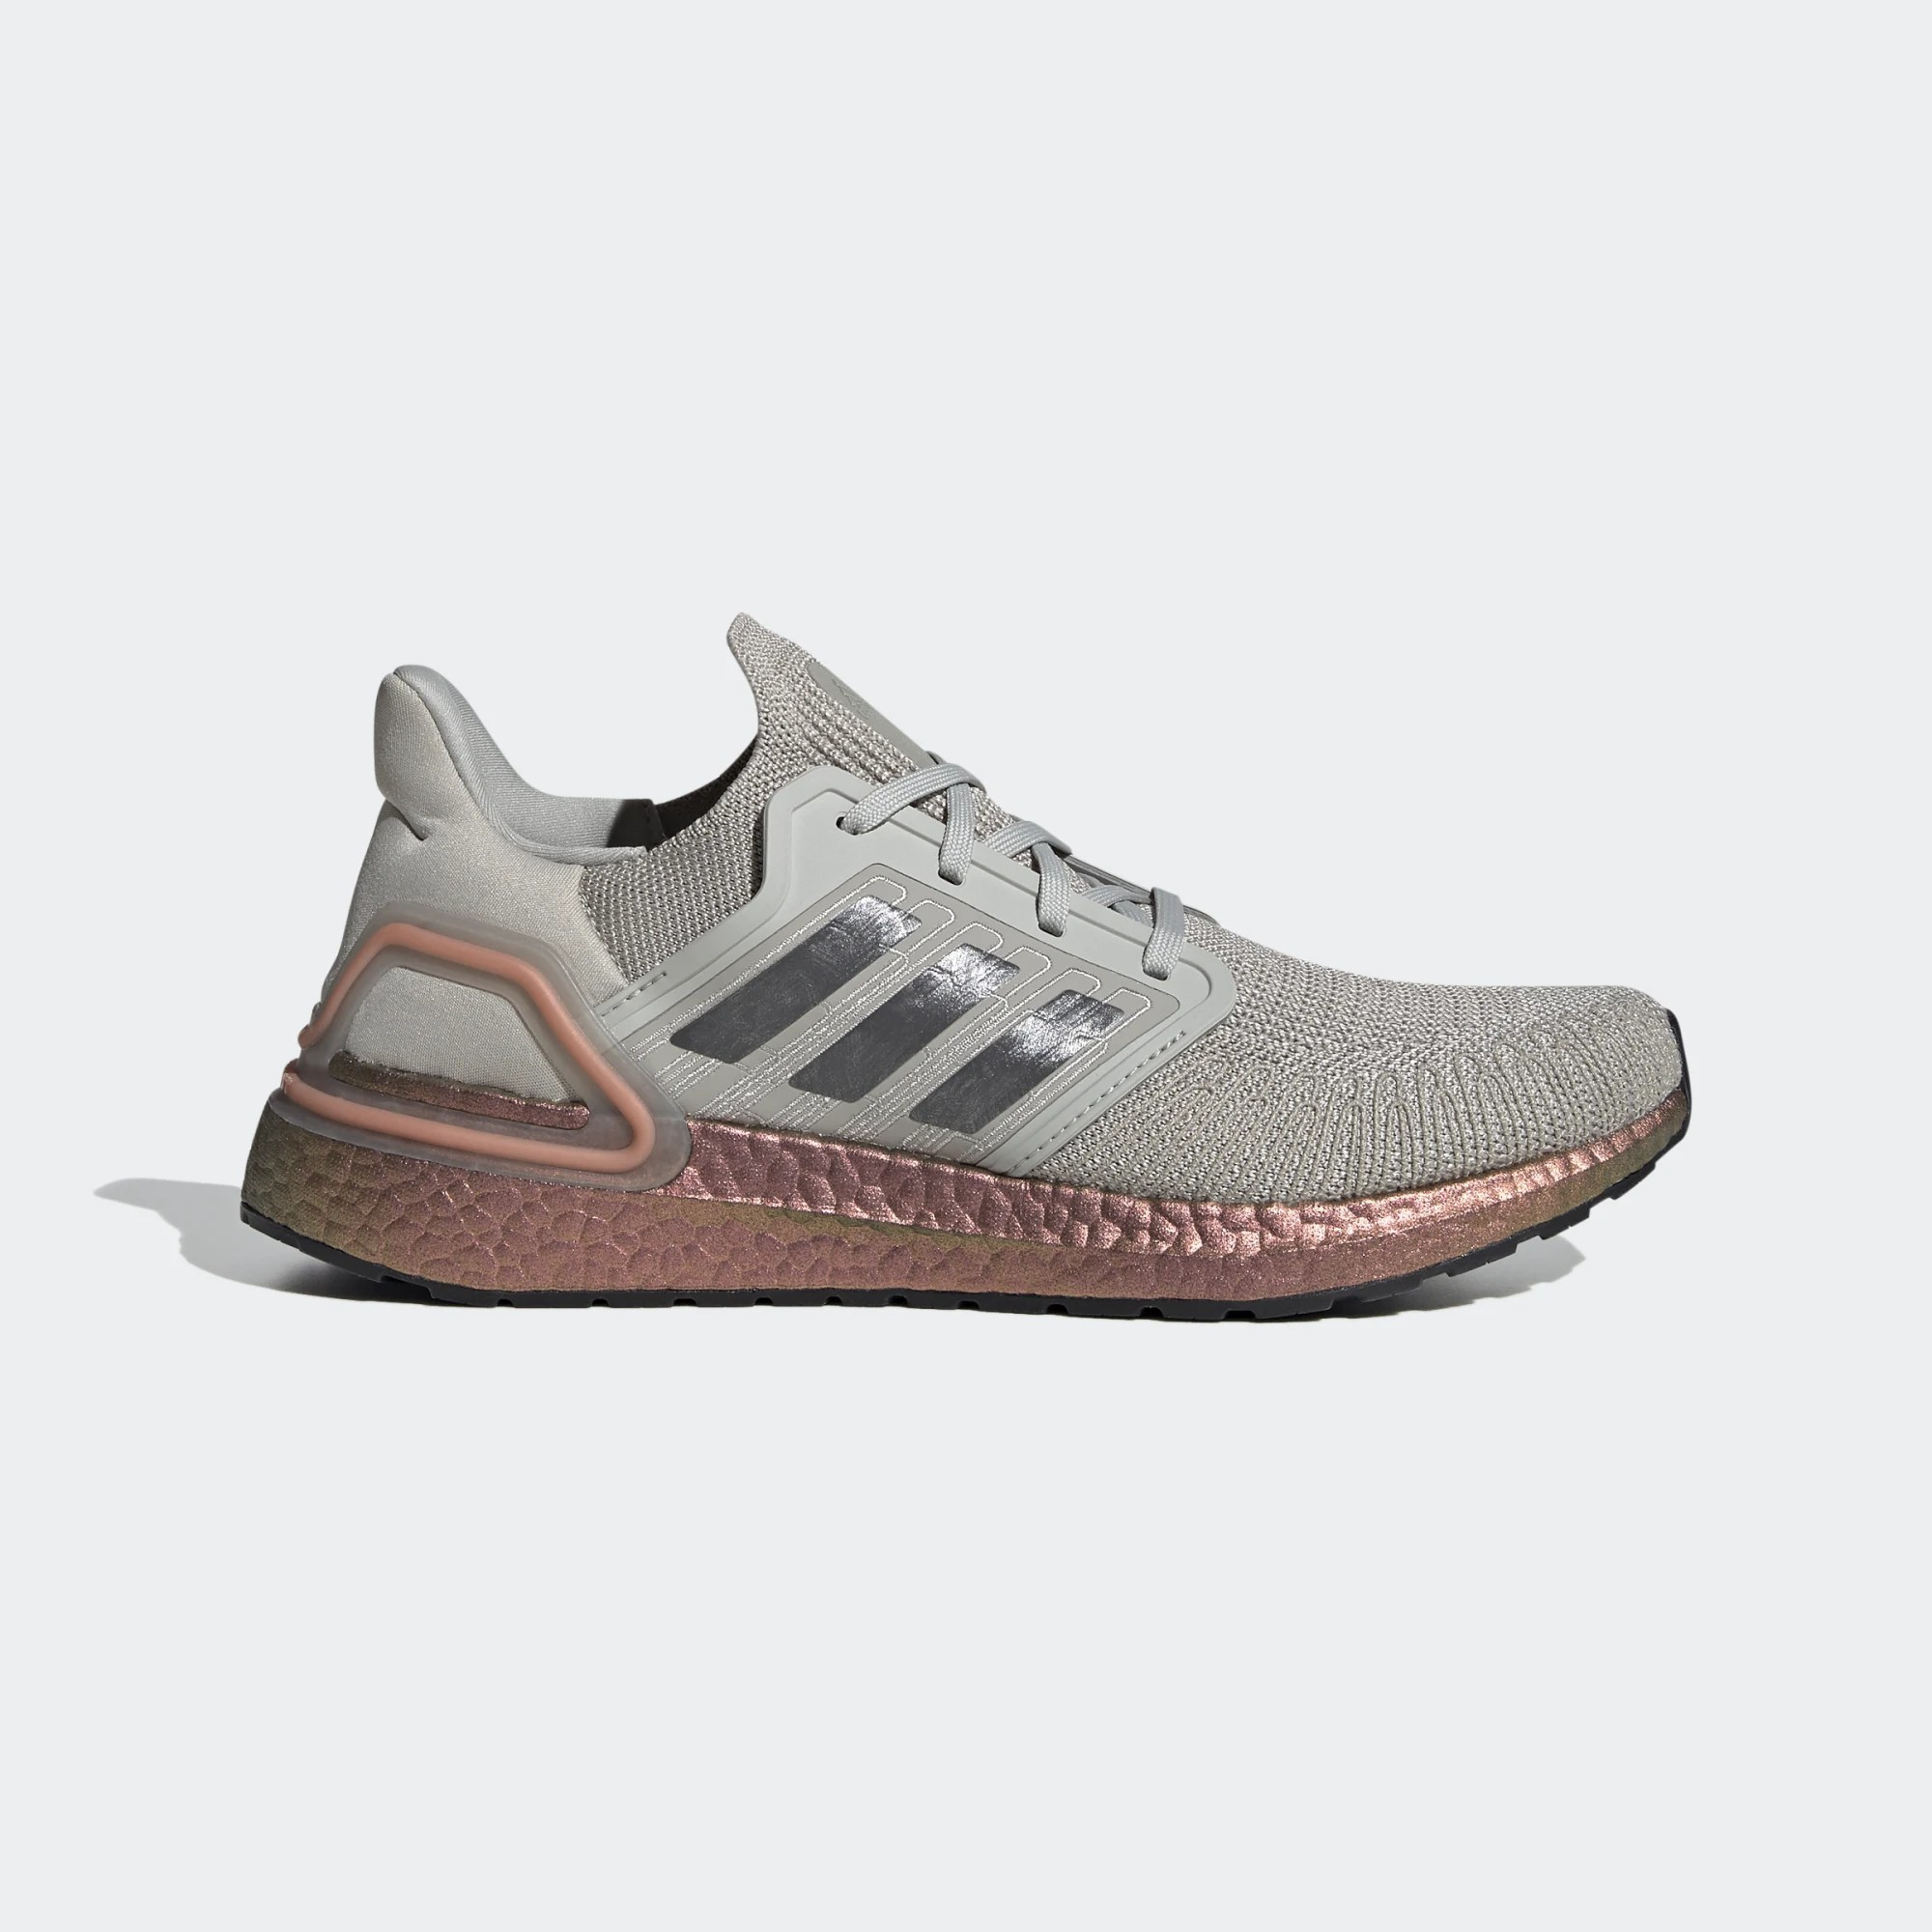 Adidas UltraBoost 20 Metal Grey FV4389